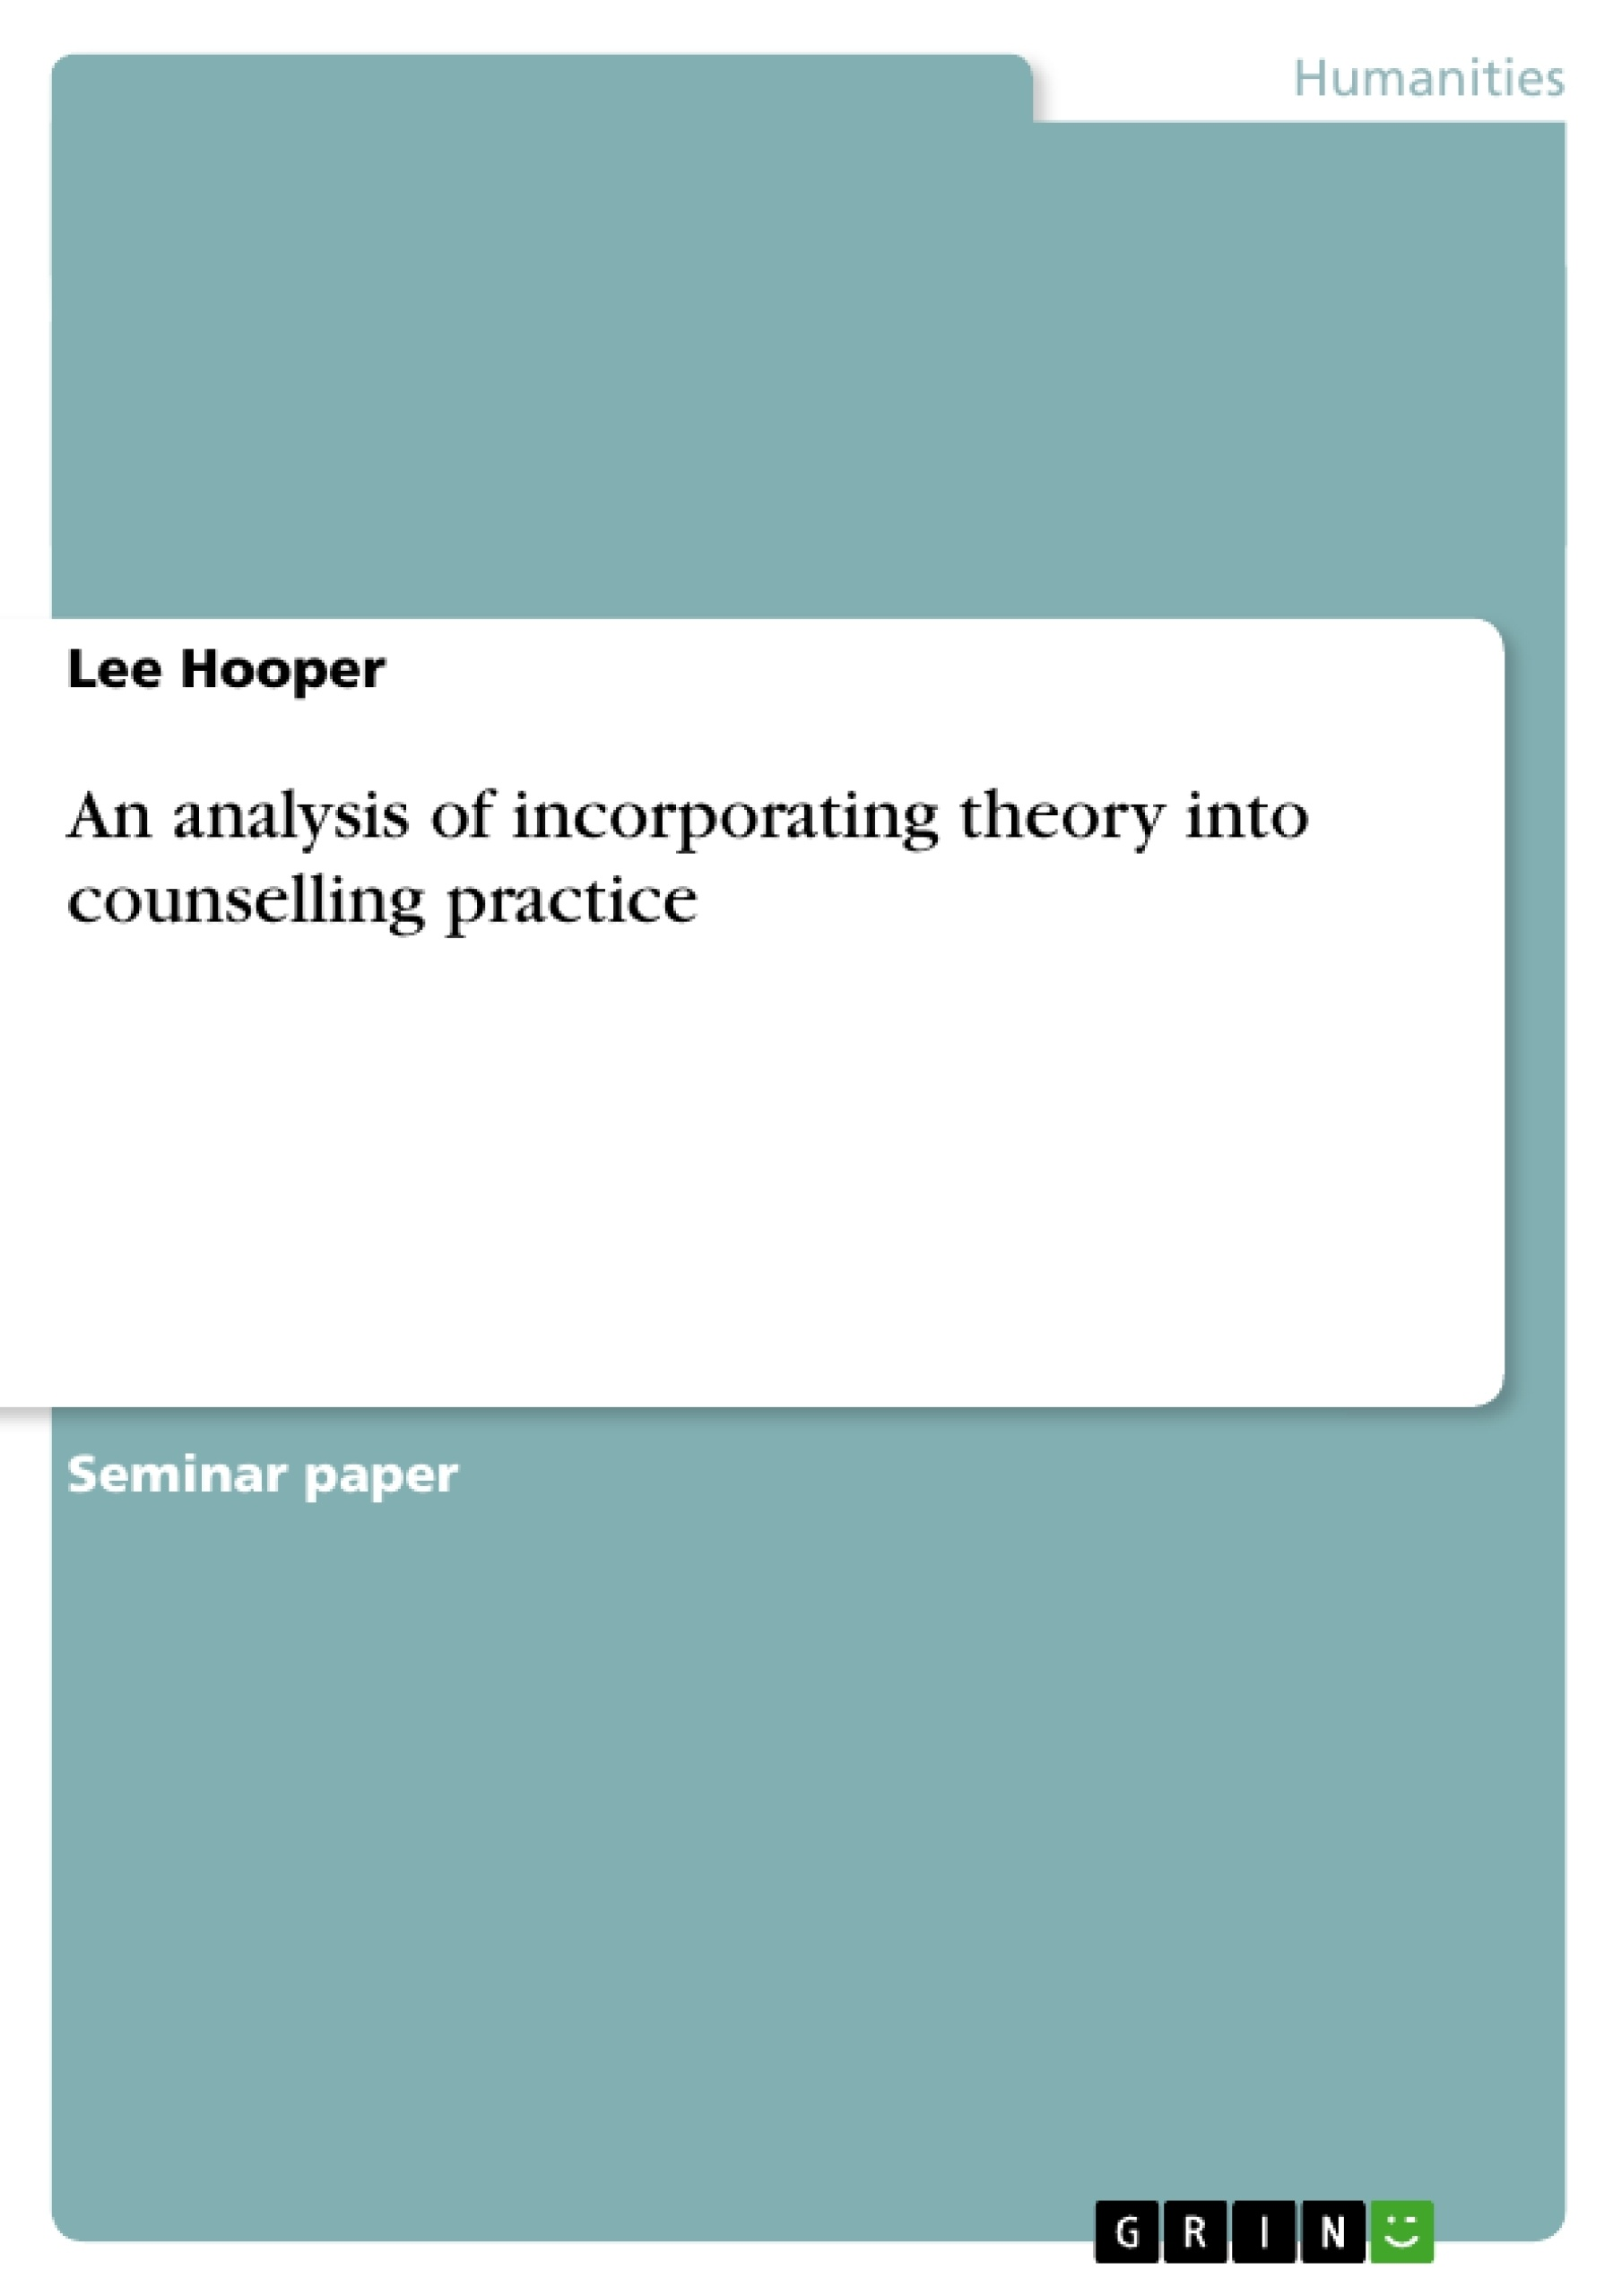 Title: An analysis of incorporating theory into counselling practice